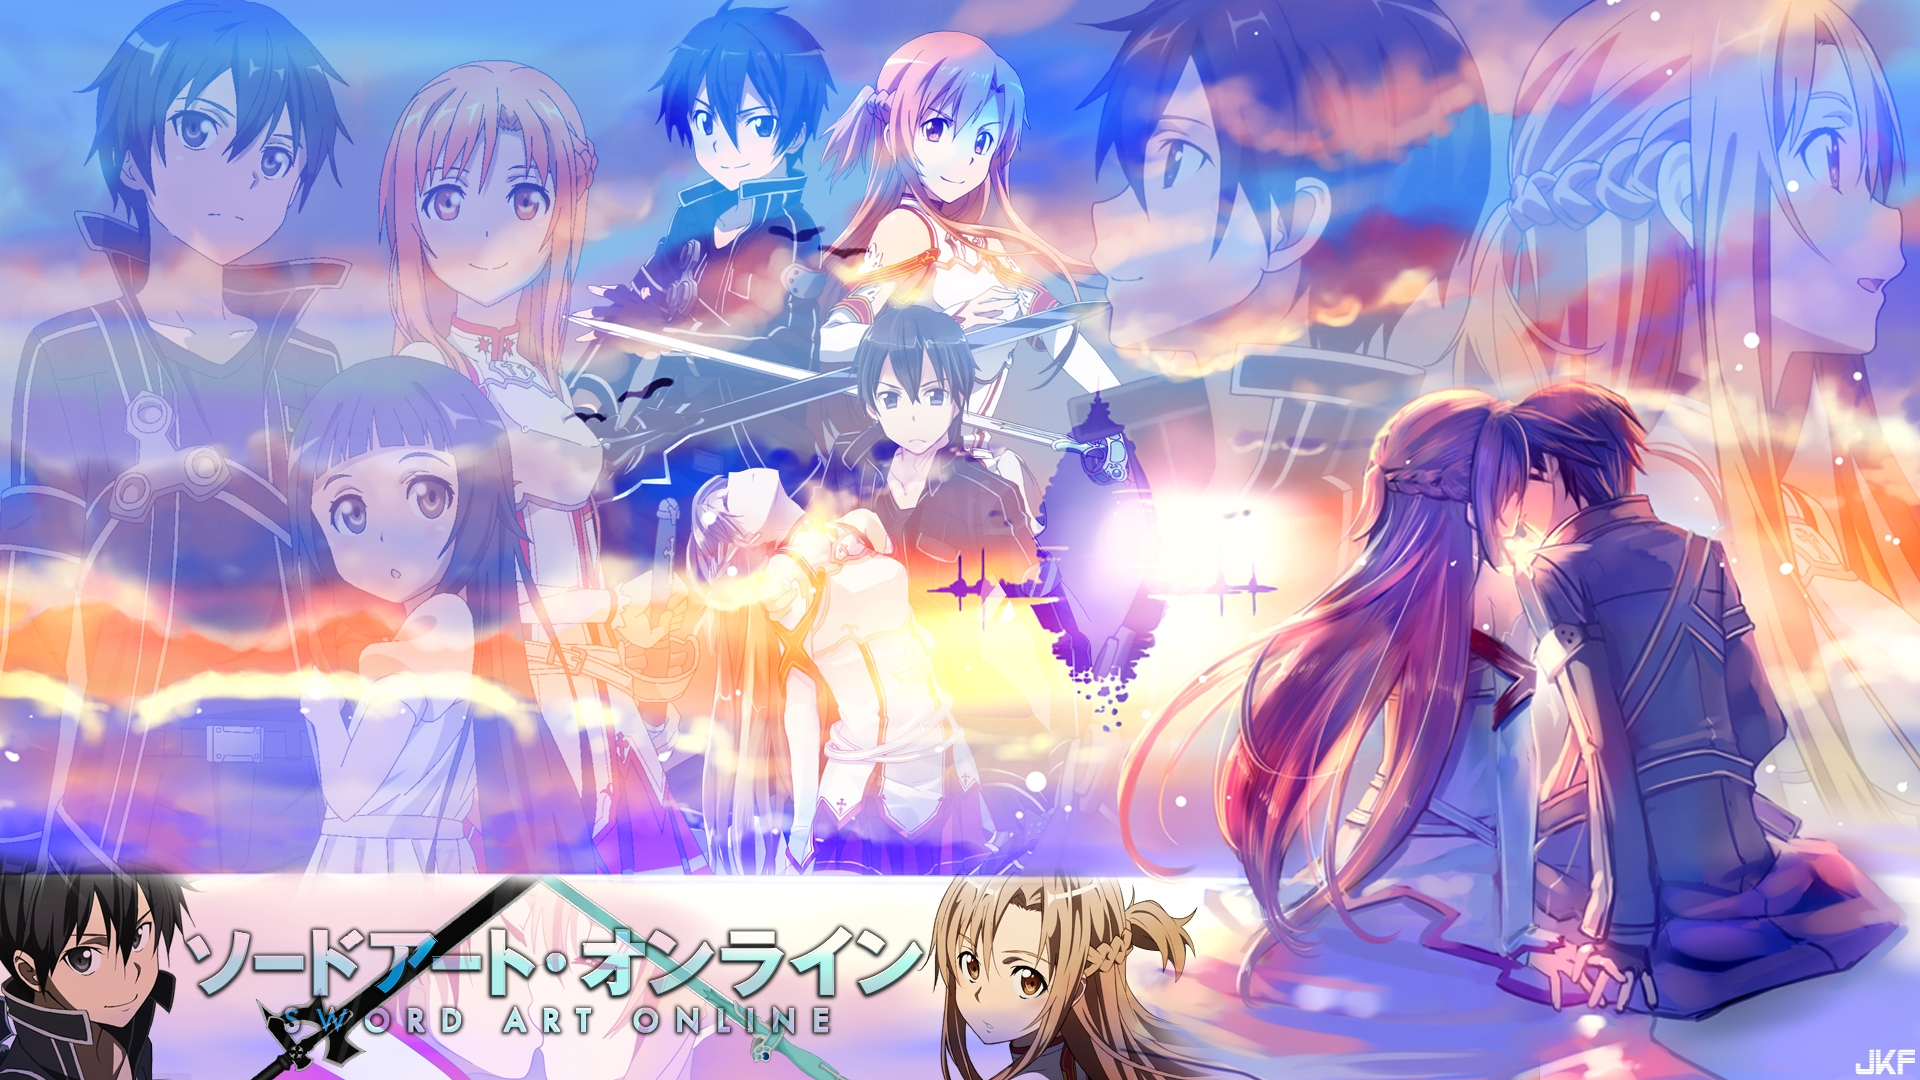 kirito_and_asuna_wallpaper_by_dinocojv-d8c6whg.jpg